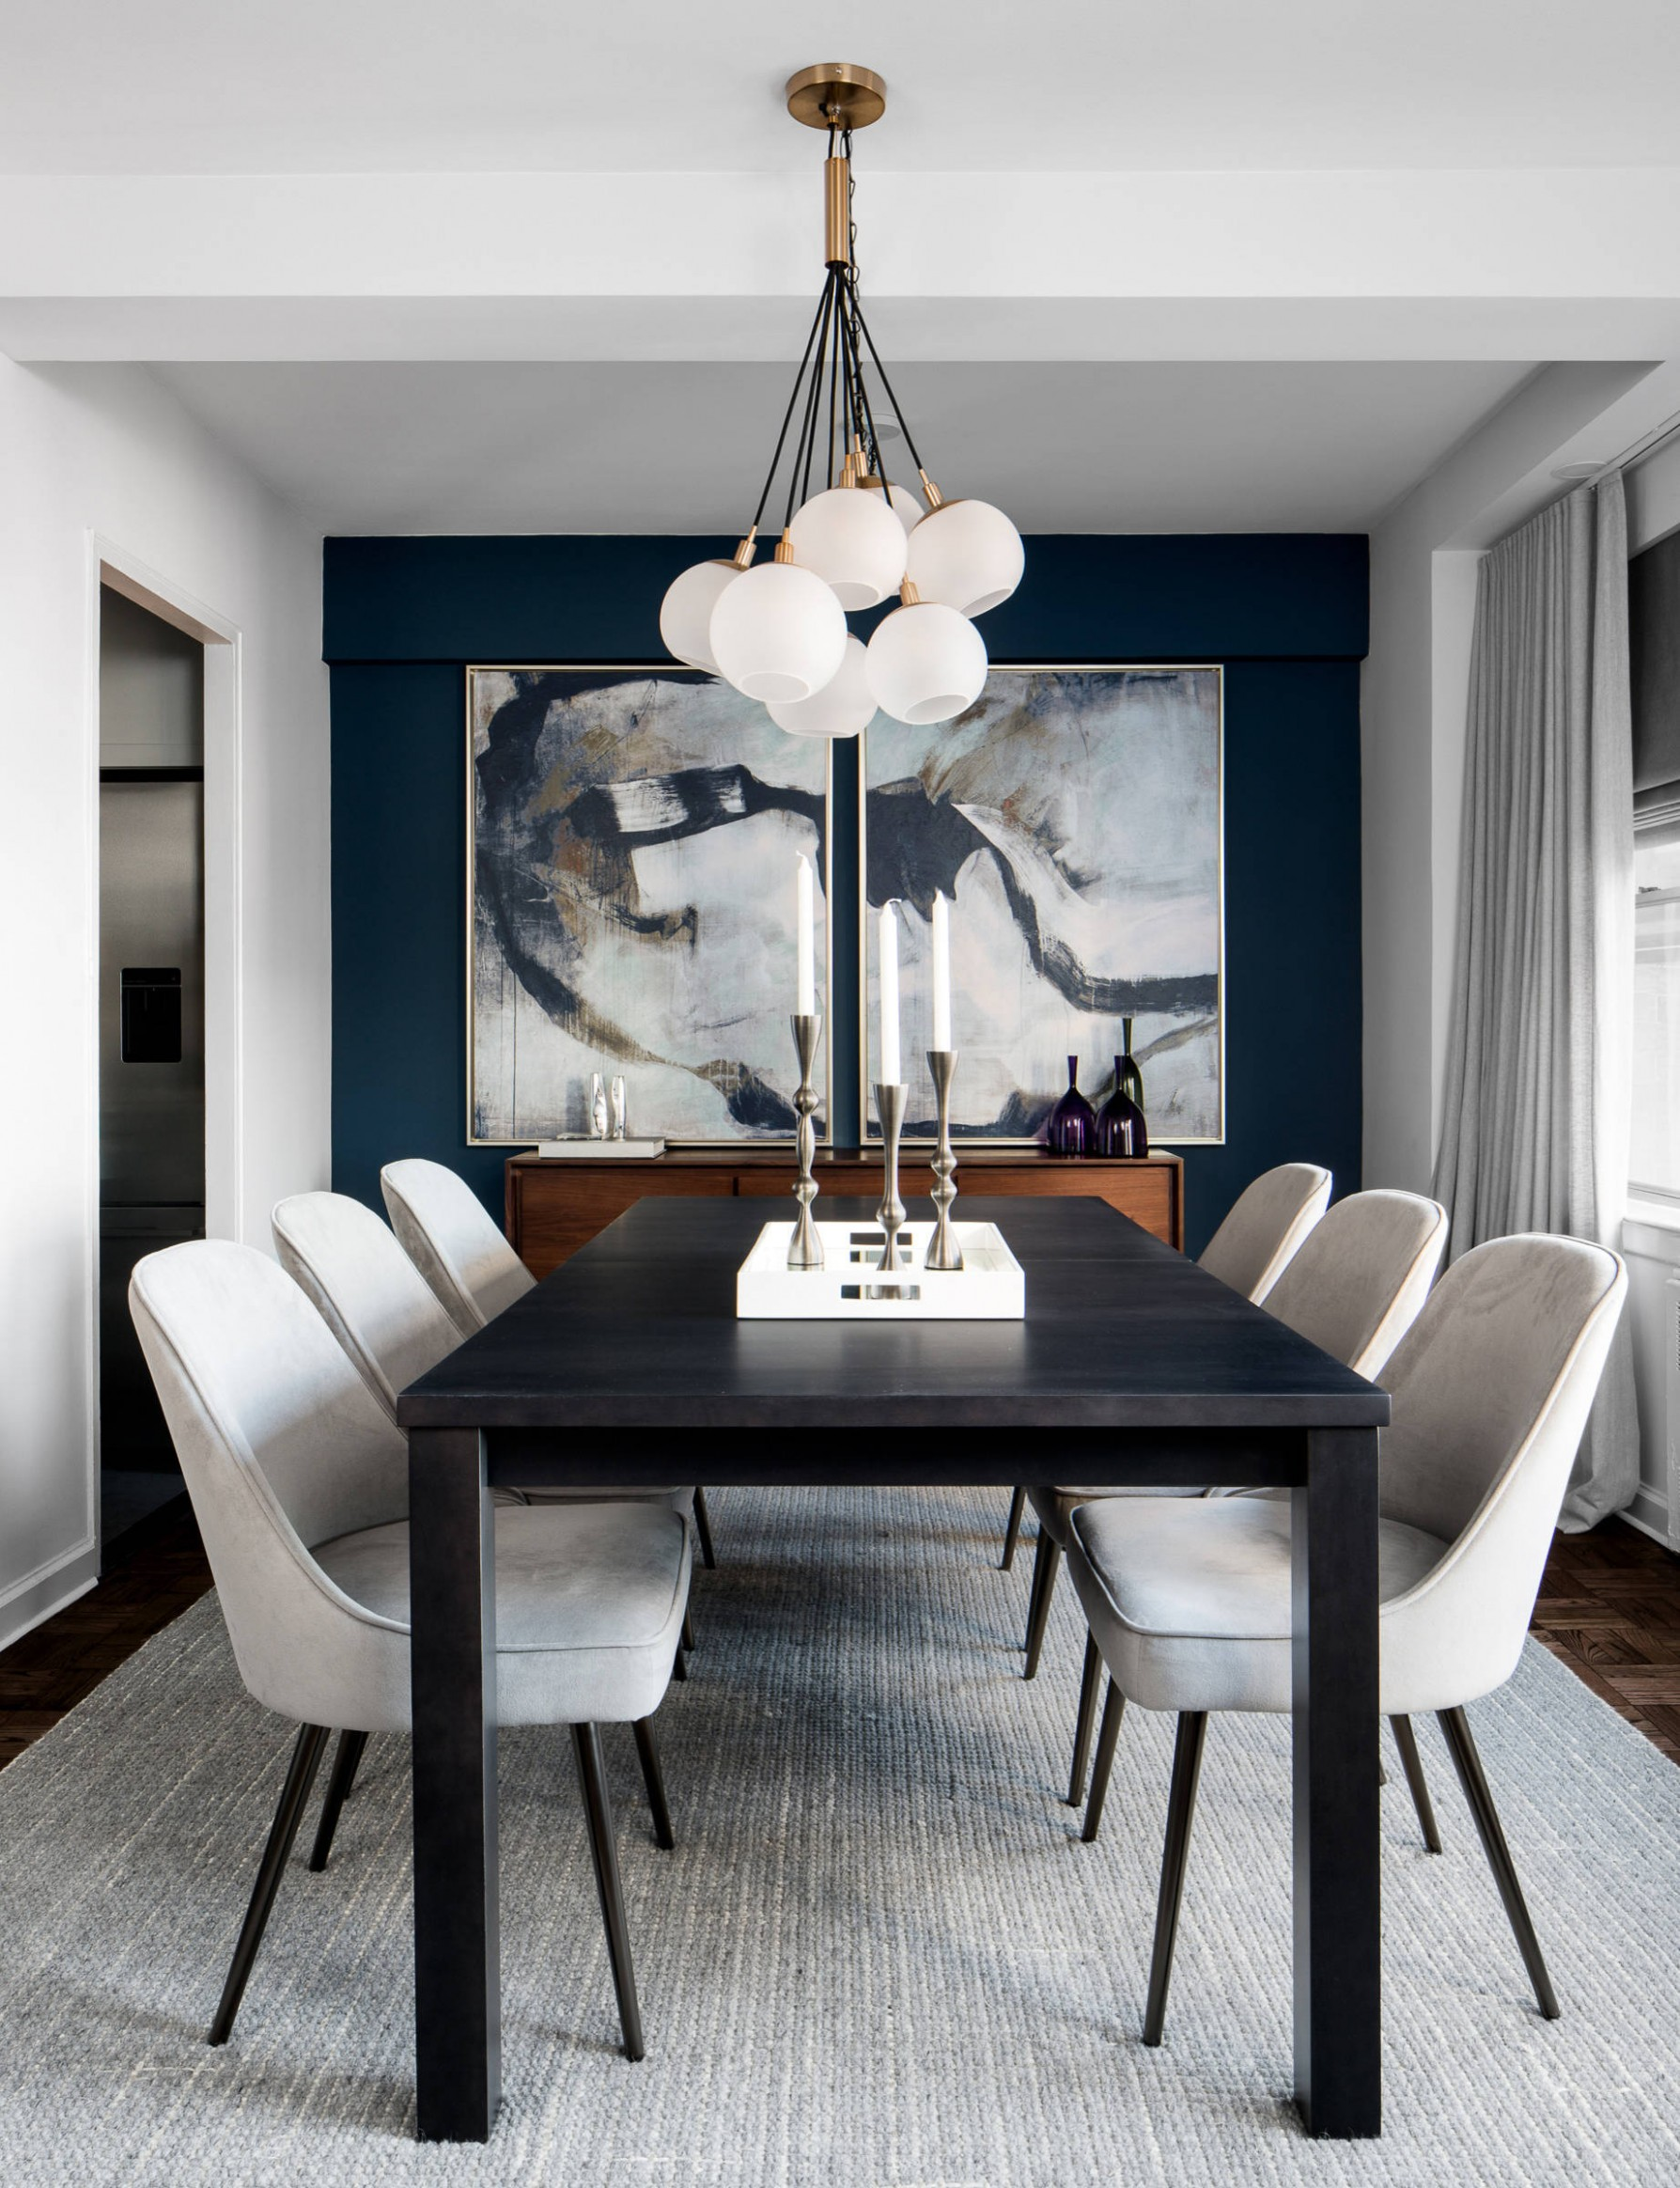 9 Beautiful Contemporary Dining Room Pictures & Ideas - November  - Dining Room Ideas Images